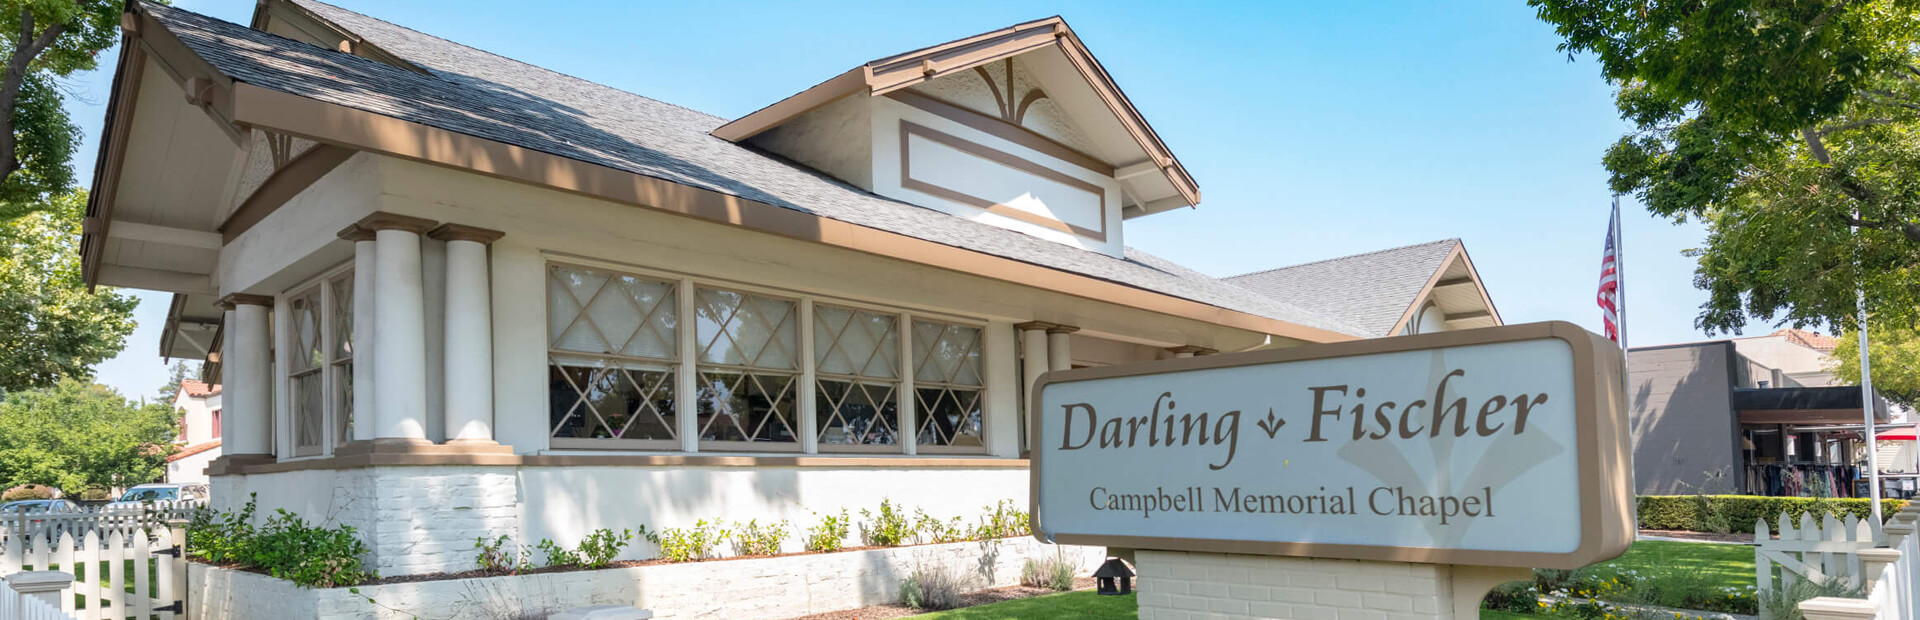 Darling & Fischer Campbell Memorial Chapel in Campbell, CA